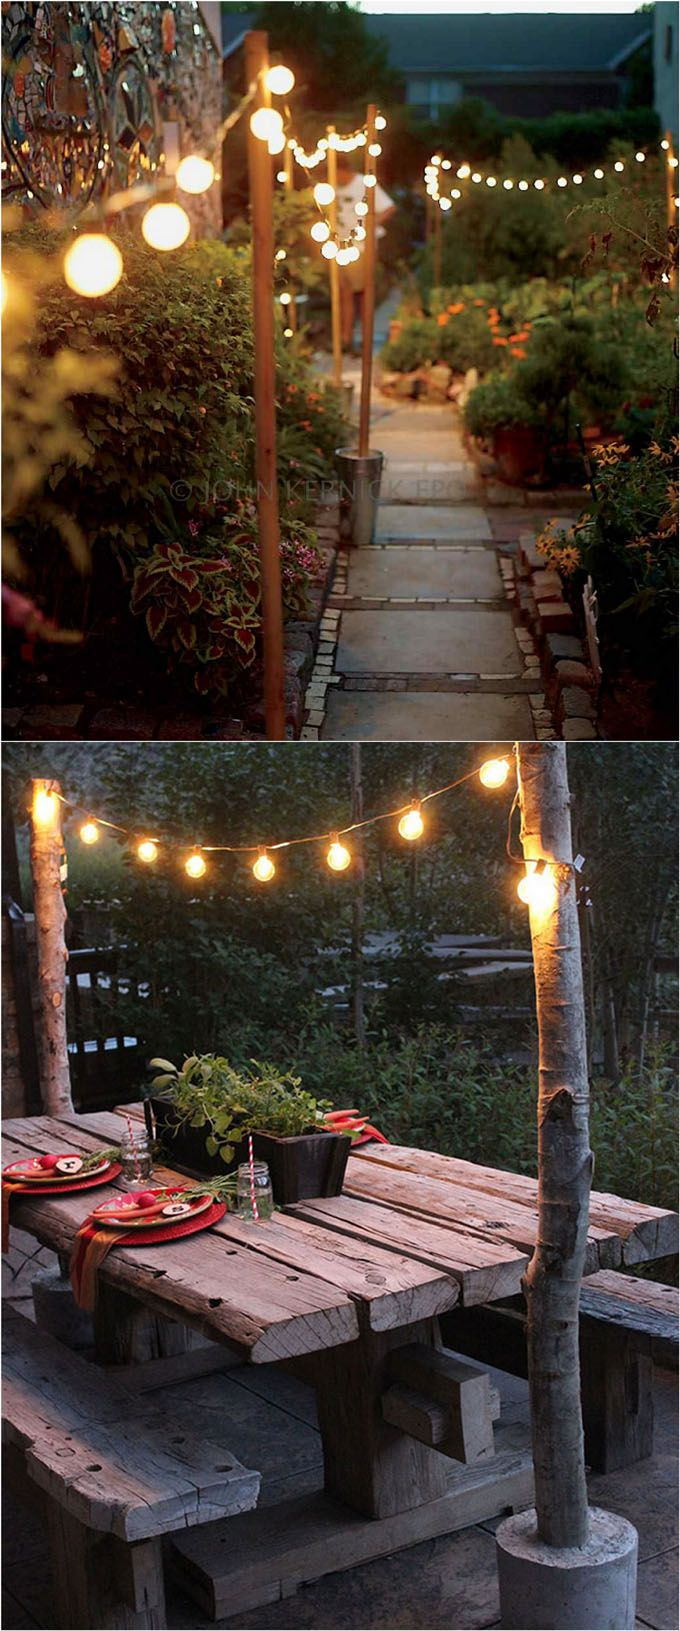 18 Ways To Transform Family Photos Into Stylish Gifts And Decor   Page 2 Of  2. Lights In GardenGarden Lighting DiyHanging Patio ...